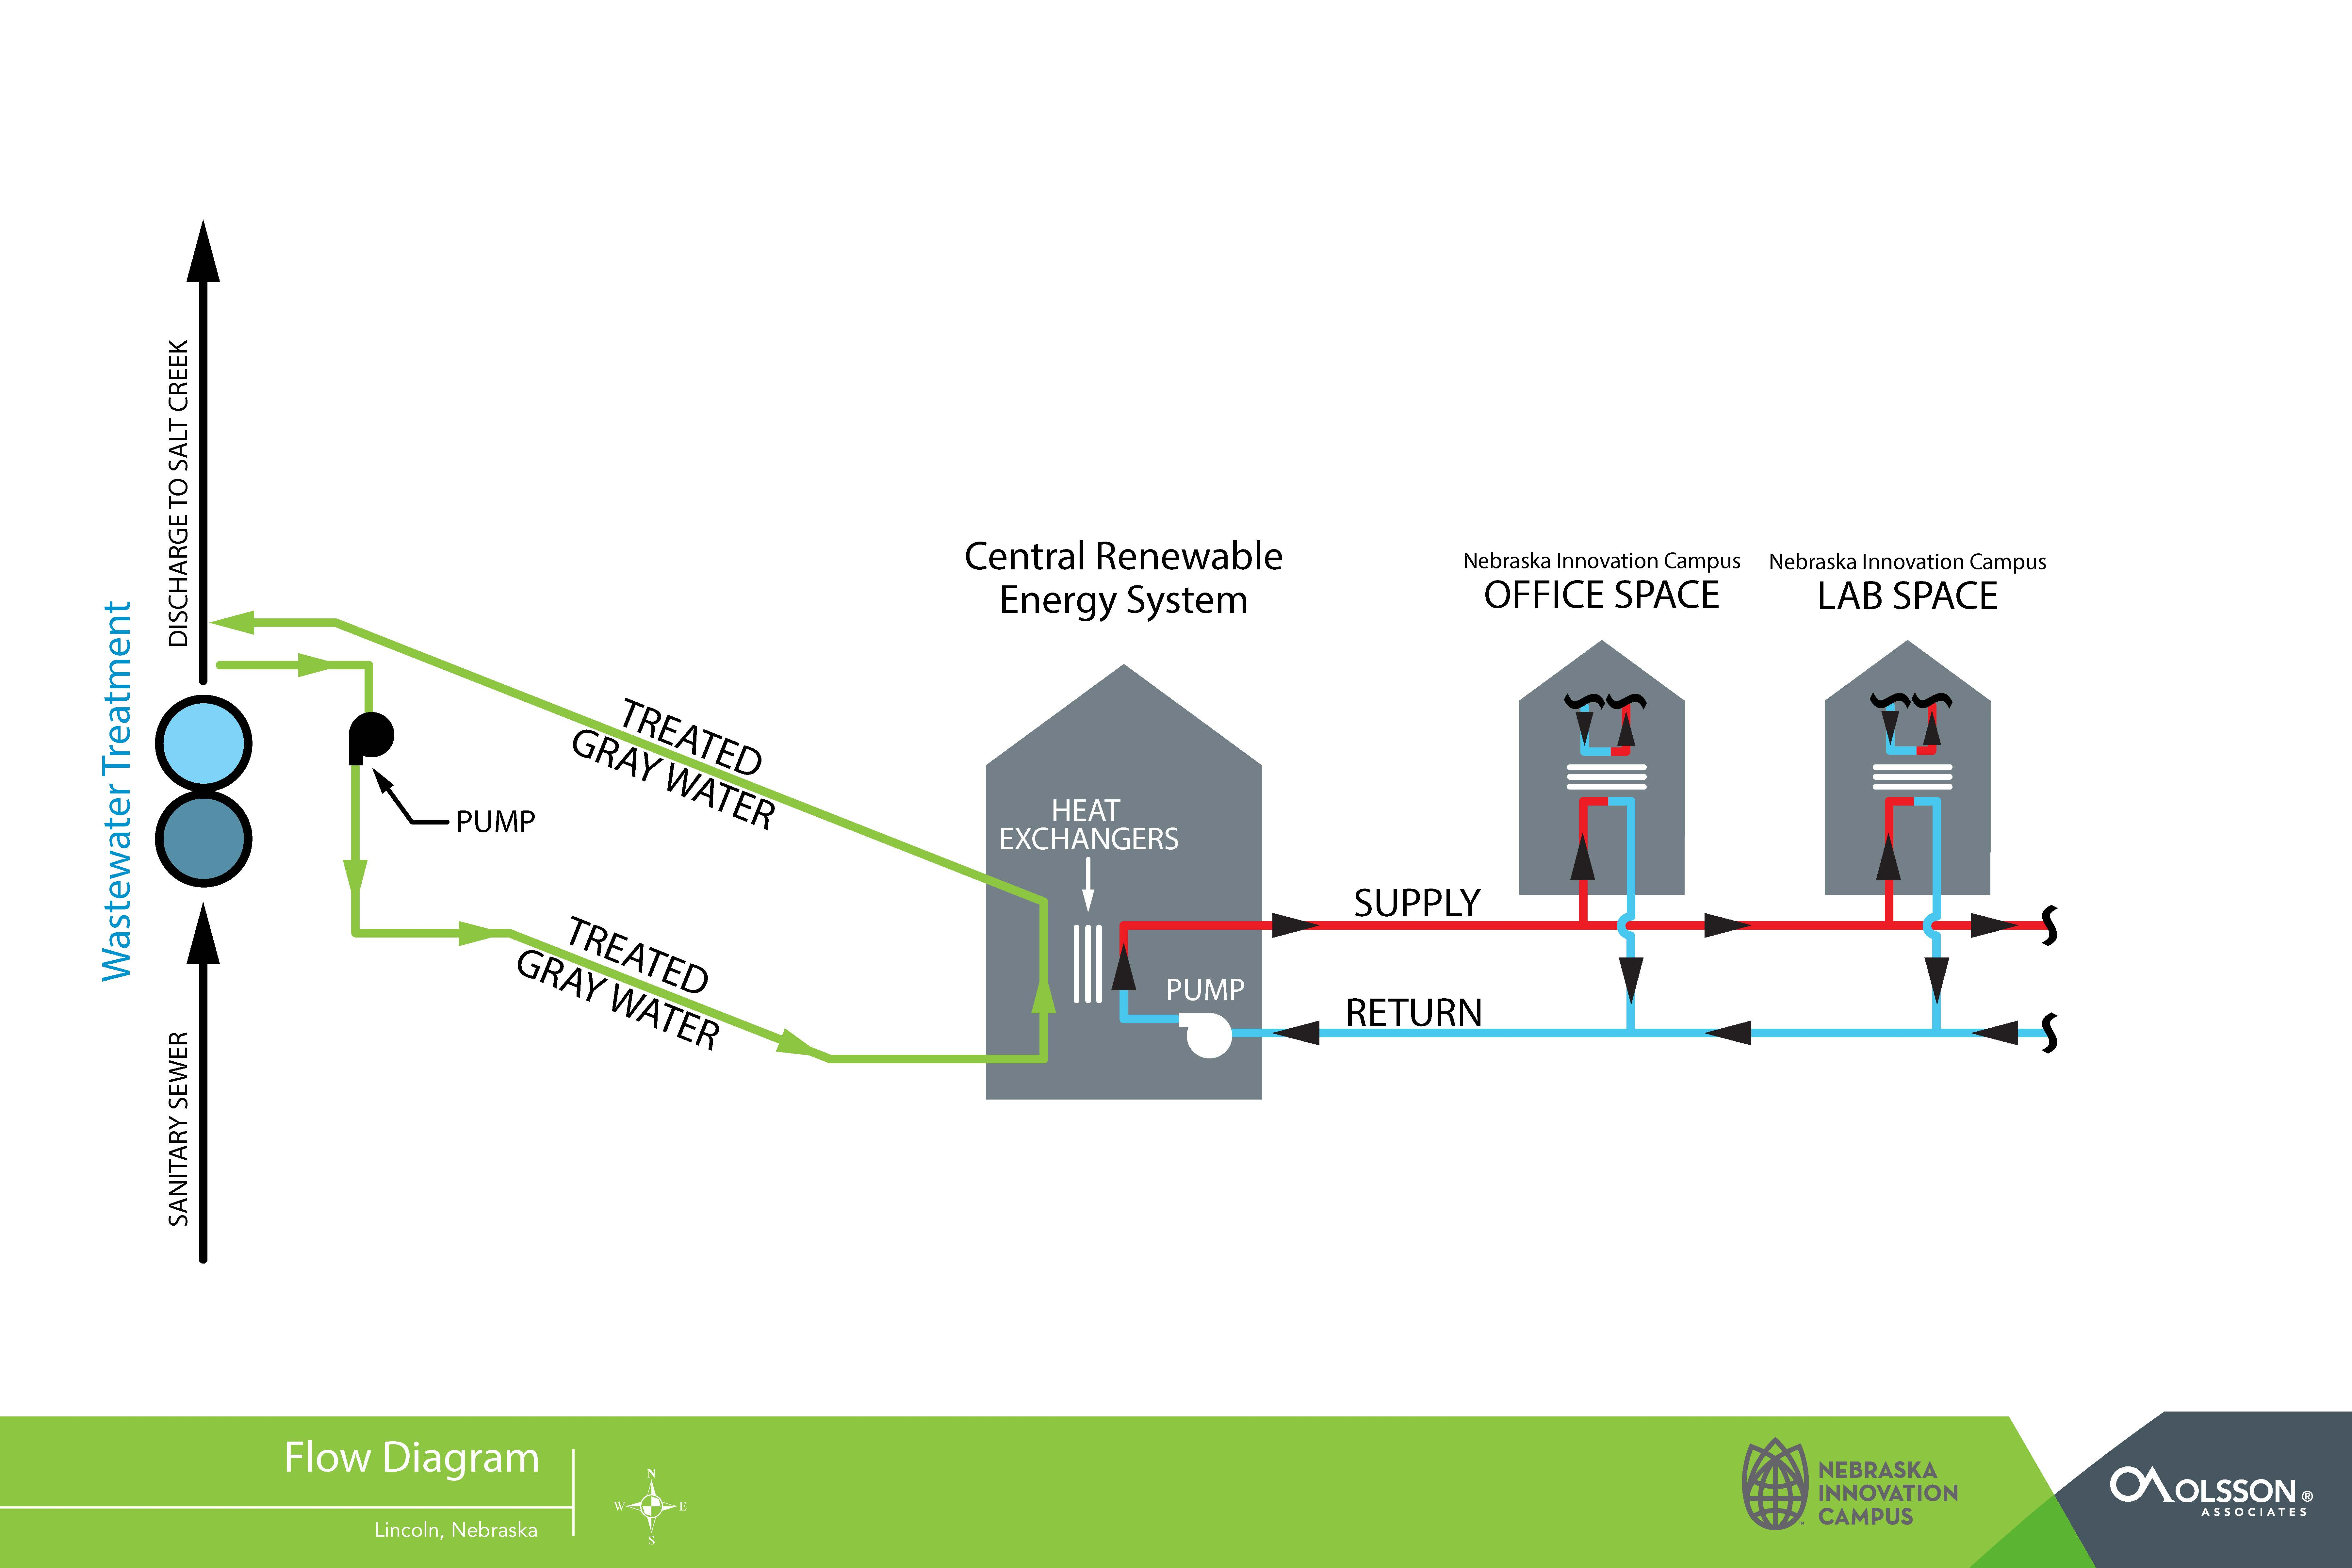 City unl partner to create unique renewable energy system at nic flow diagram of centralized renewable energy system courtesy olsson associates nvjuhfo Image collections